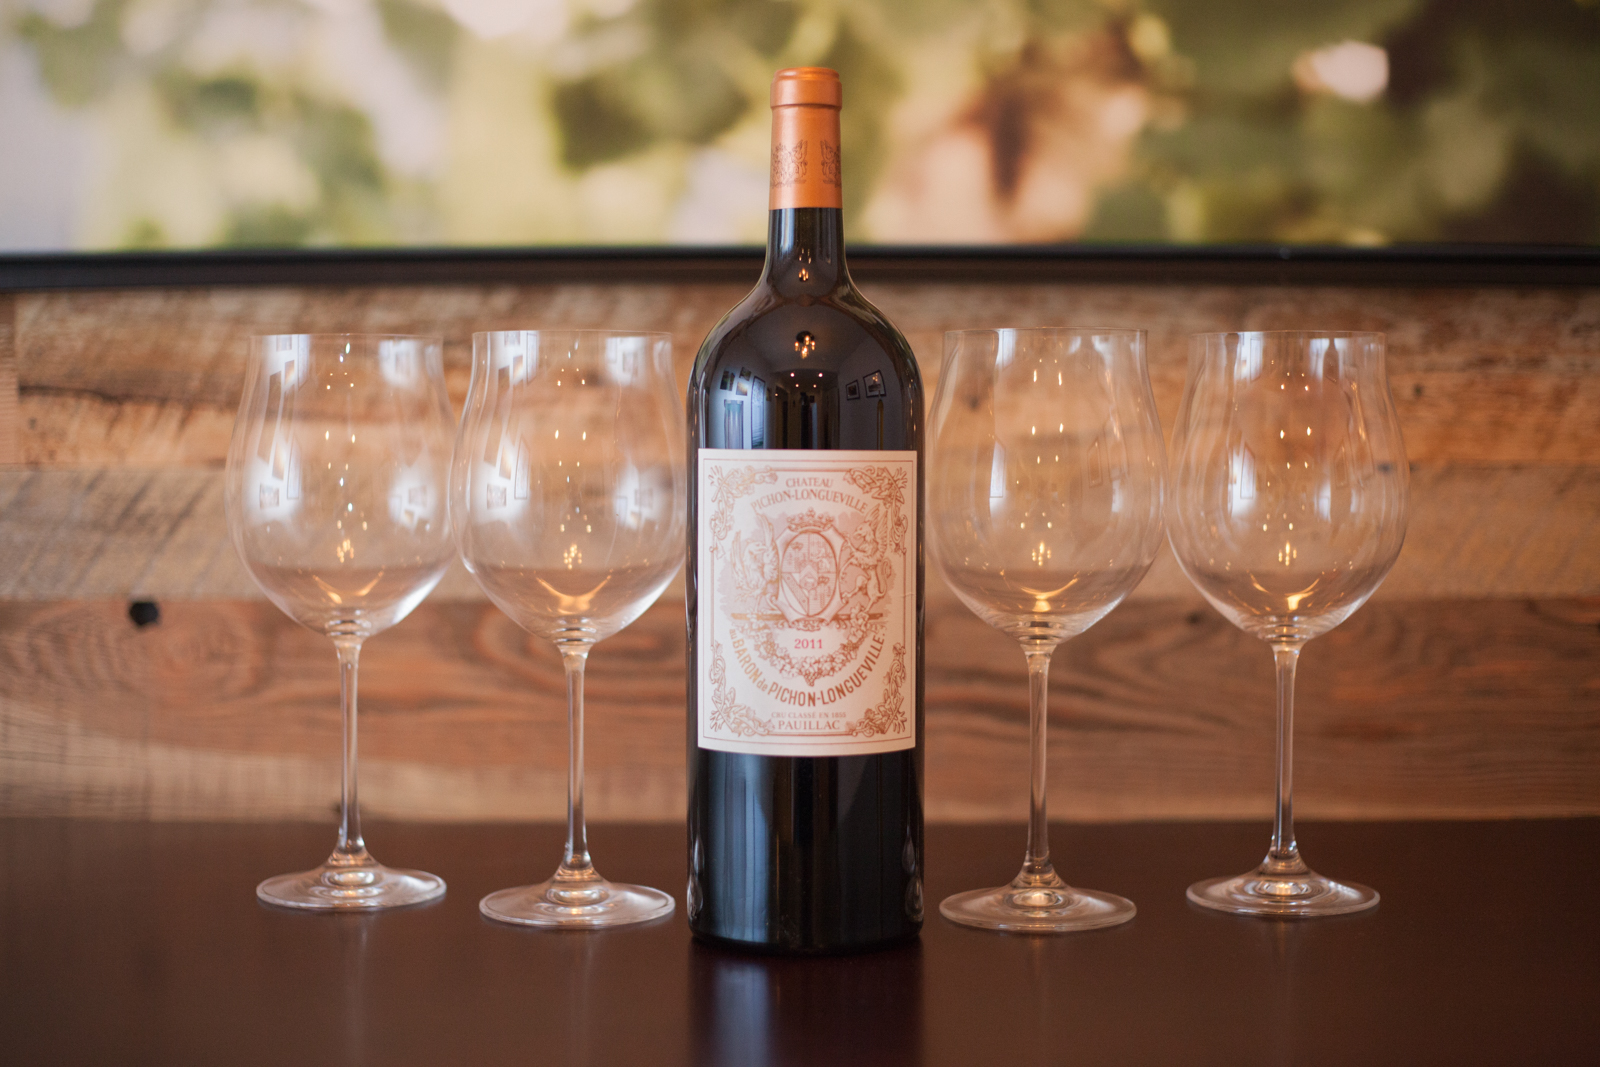 A magnum of the 2011 Château Pichon-Longueville Pauillac. ©Kevin Day / Opening a Bottle